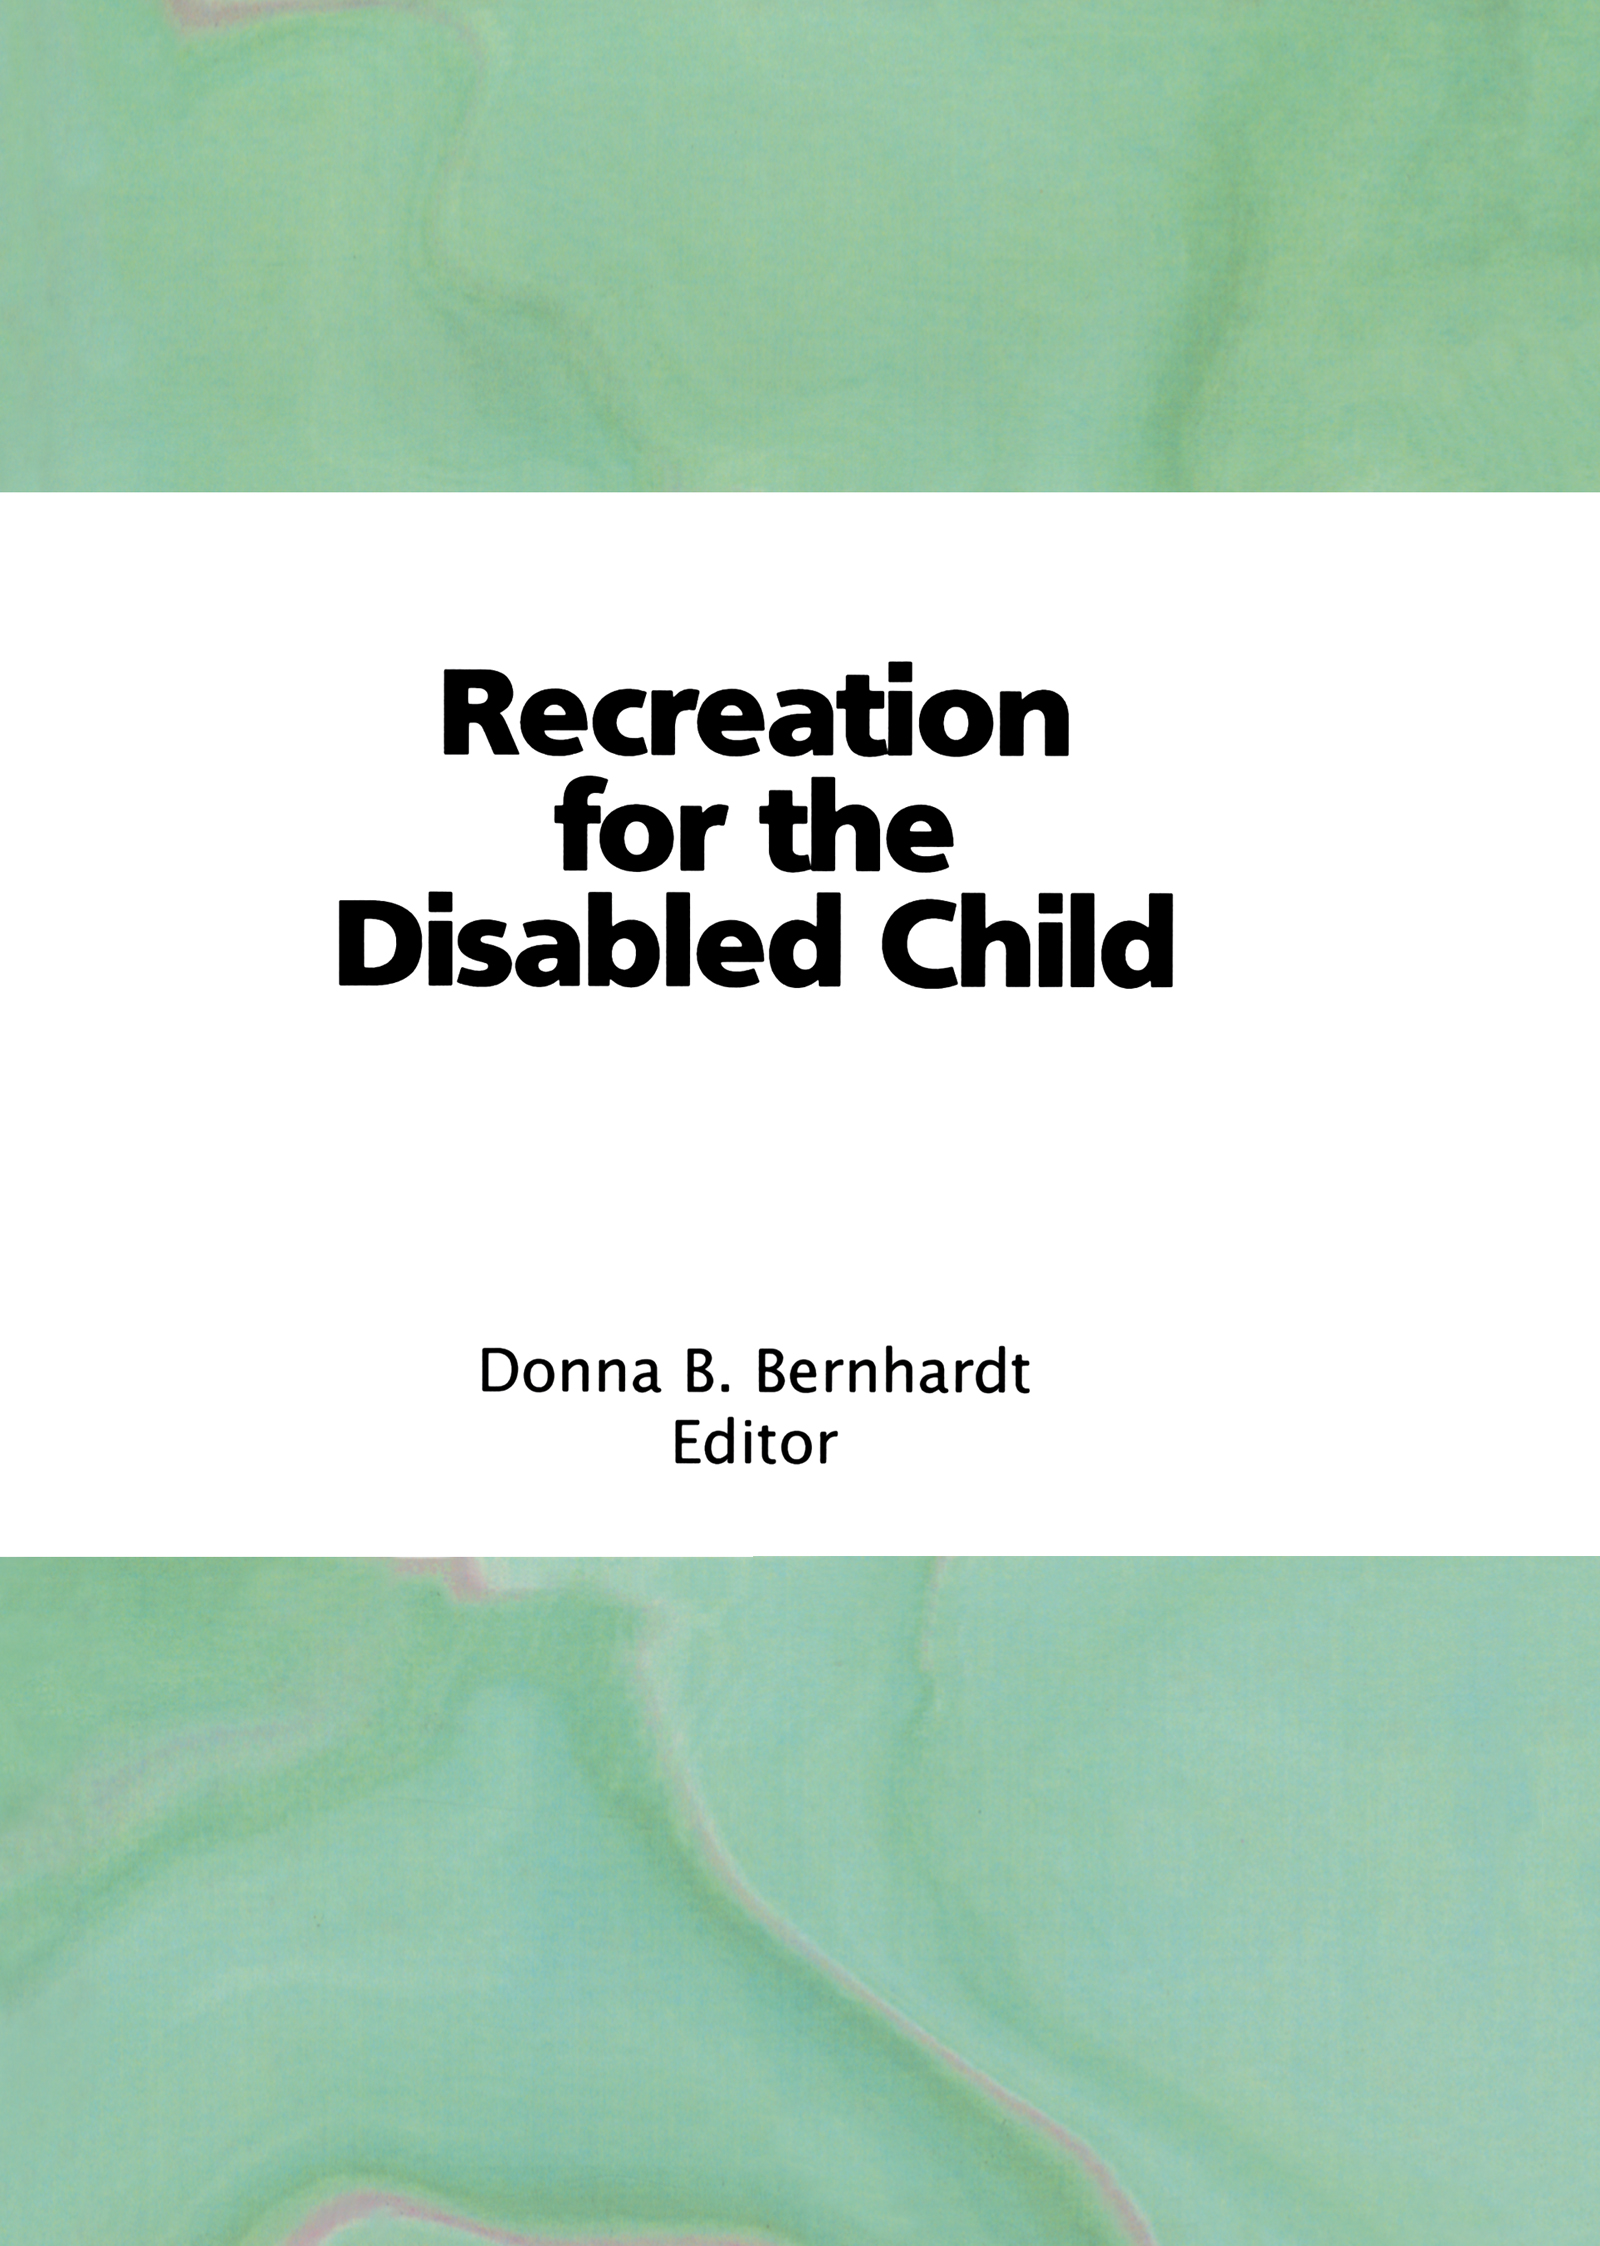 Recreation for the Disabled Child